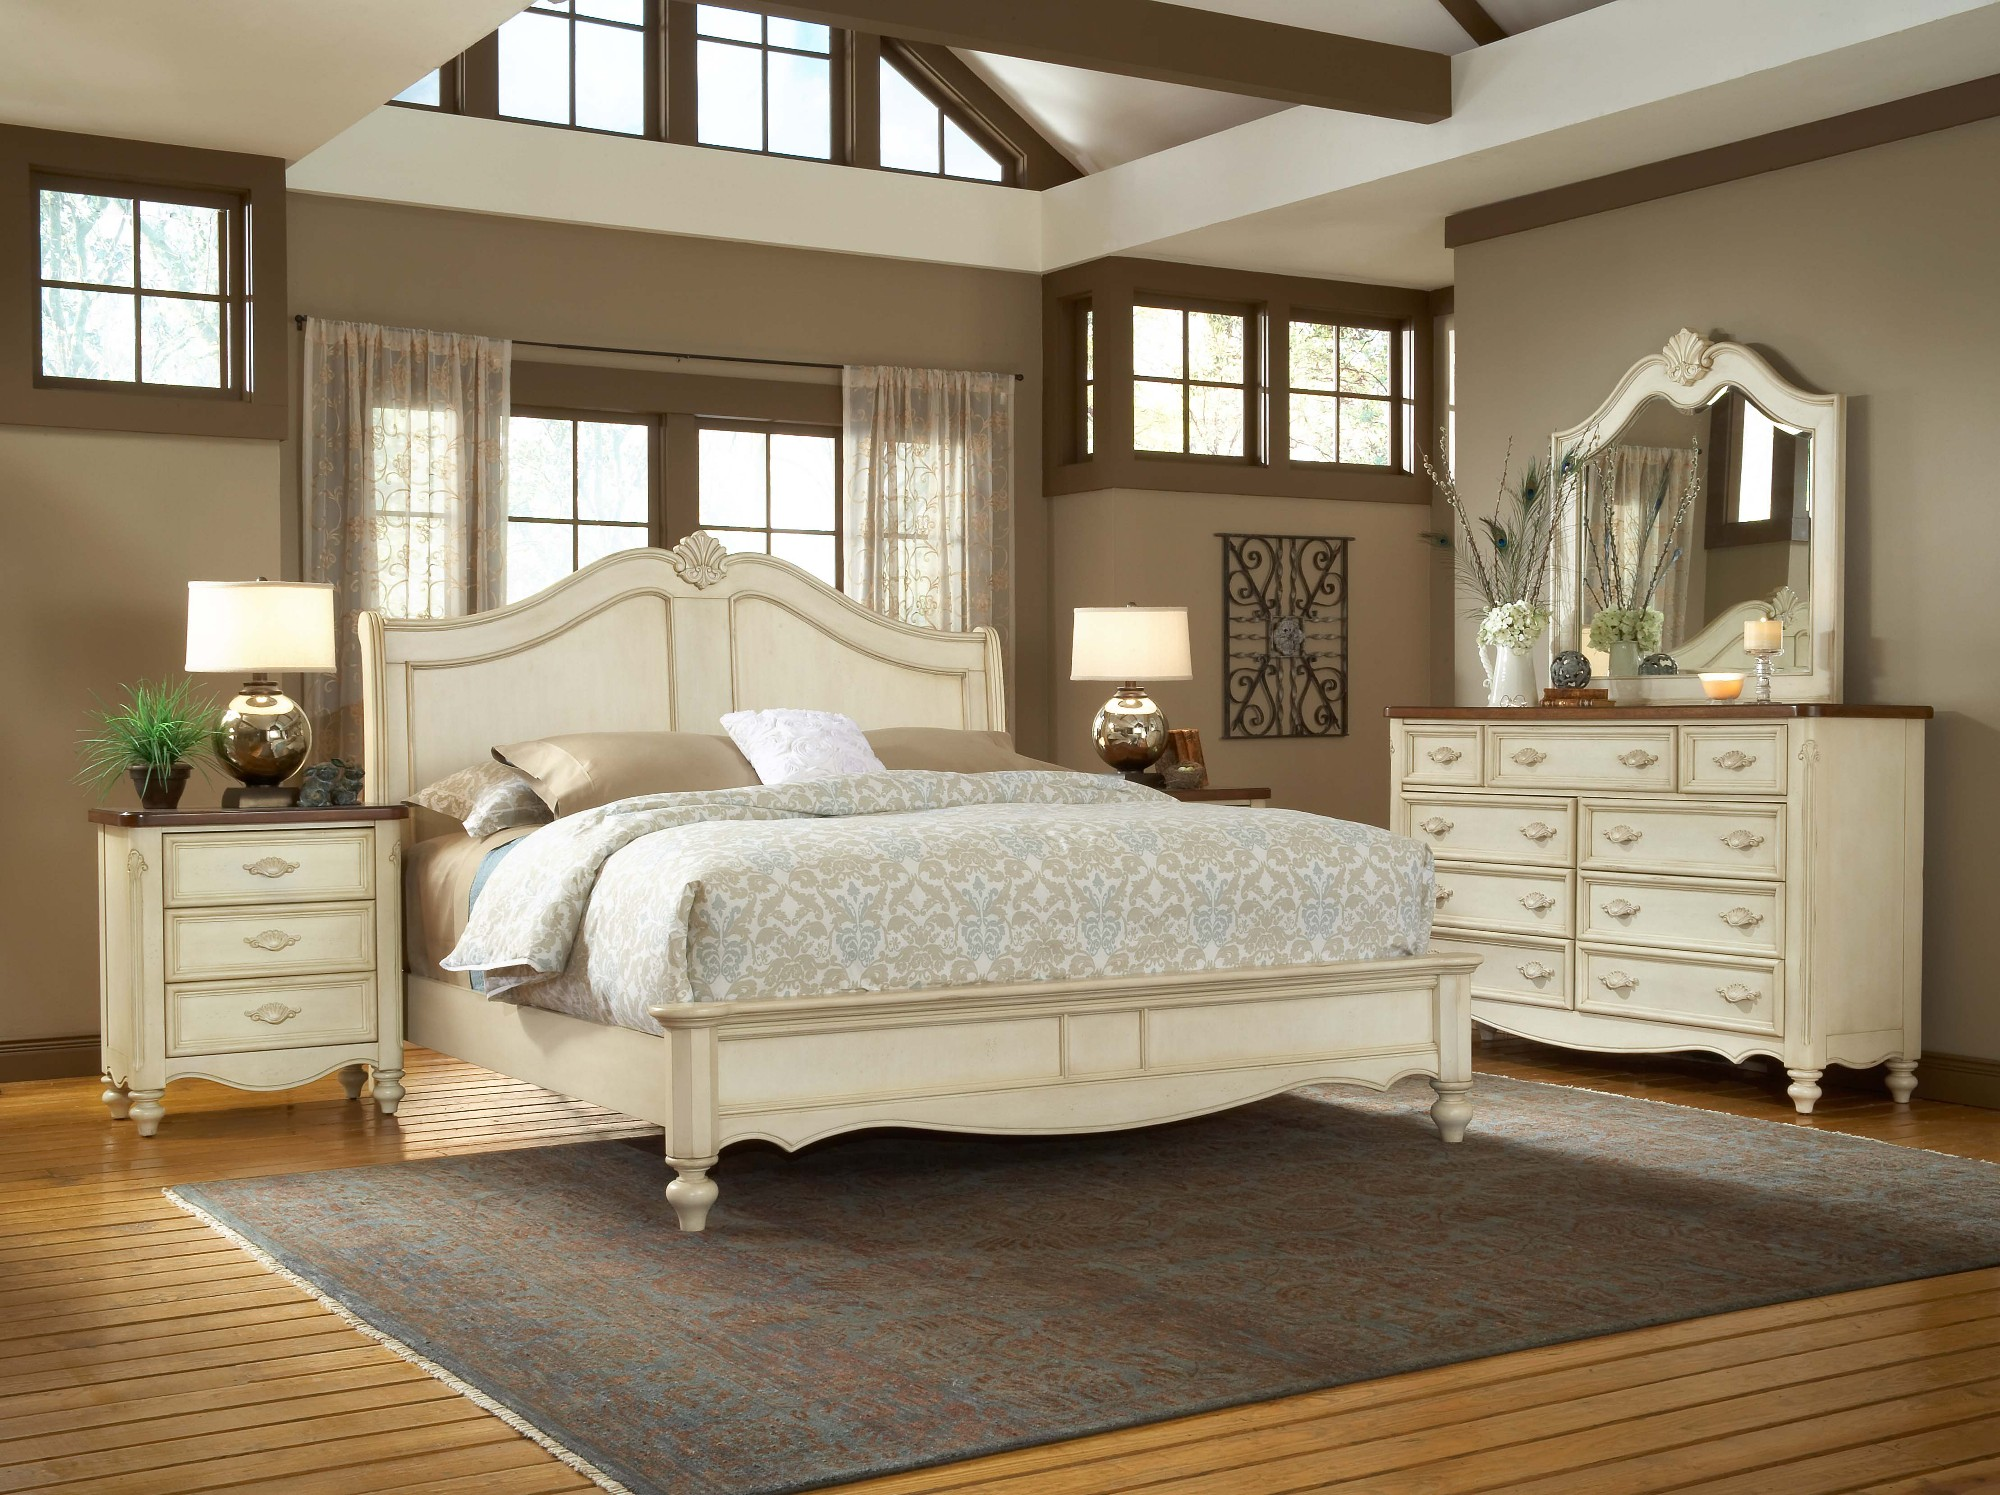 Bedroom Furniture Sets Long Island (View 6 of 10)